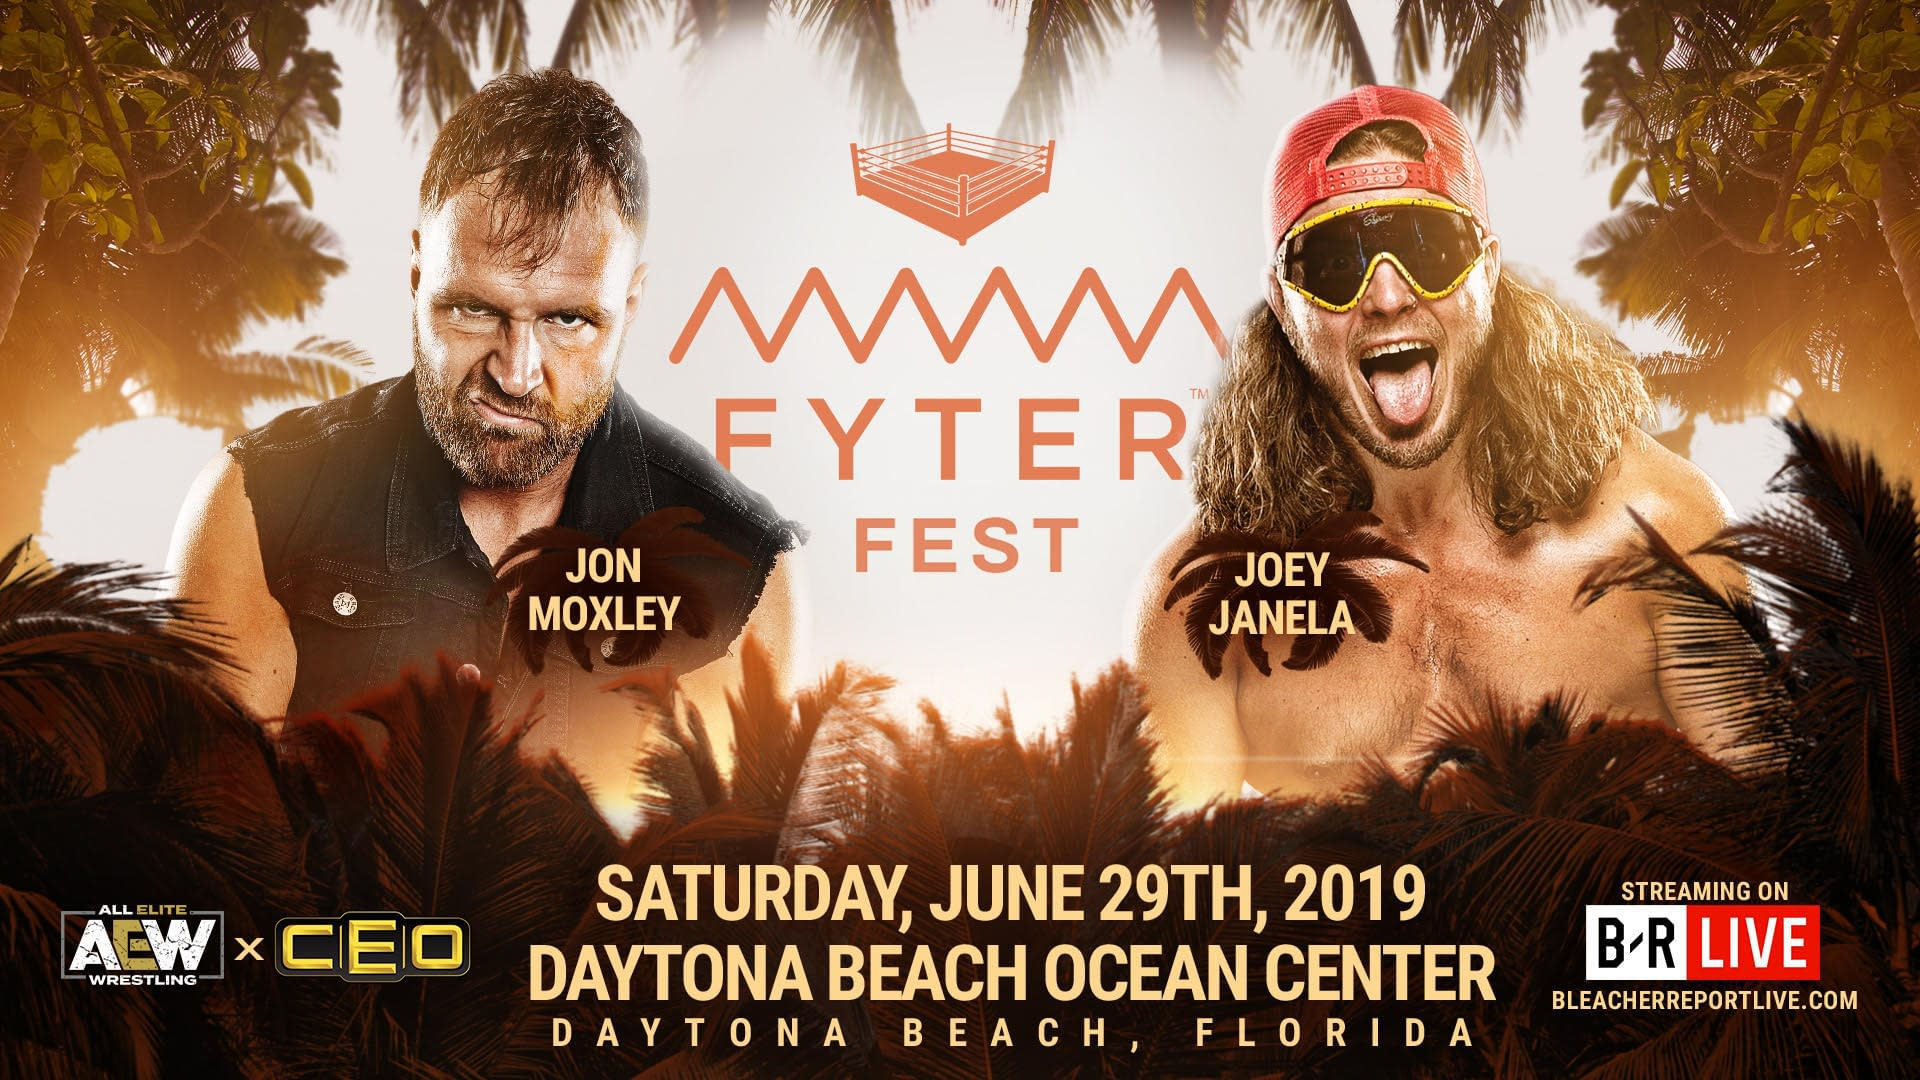 Fyter Fest 2019: AEW Offers Wrestling Fans Jon Moxley for Free [VIDEO]